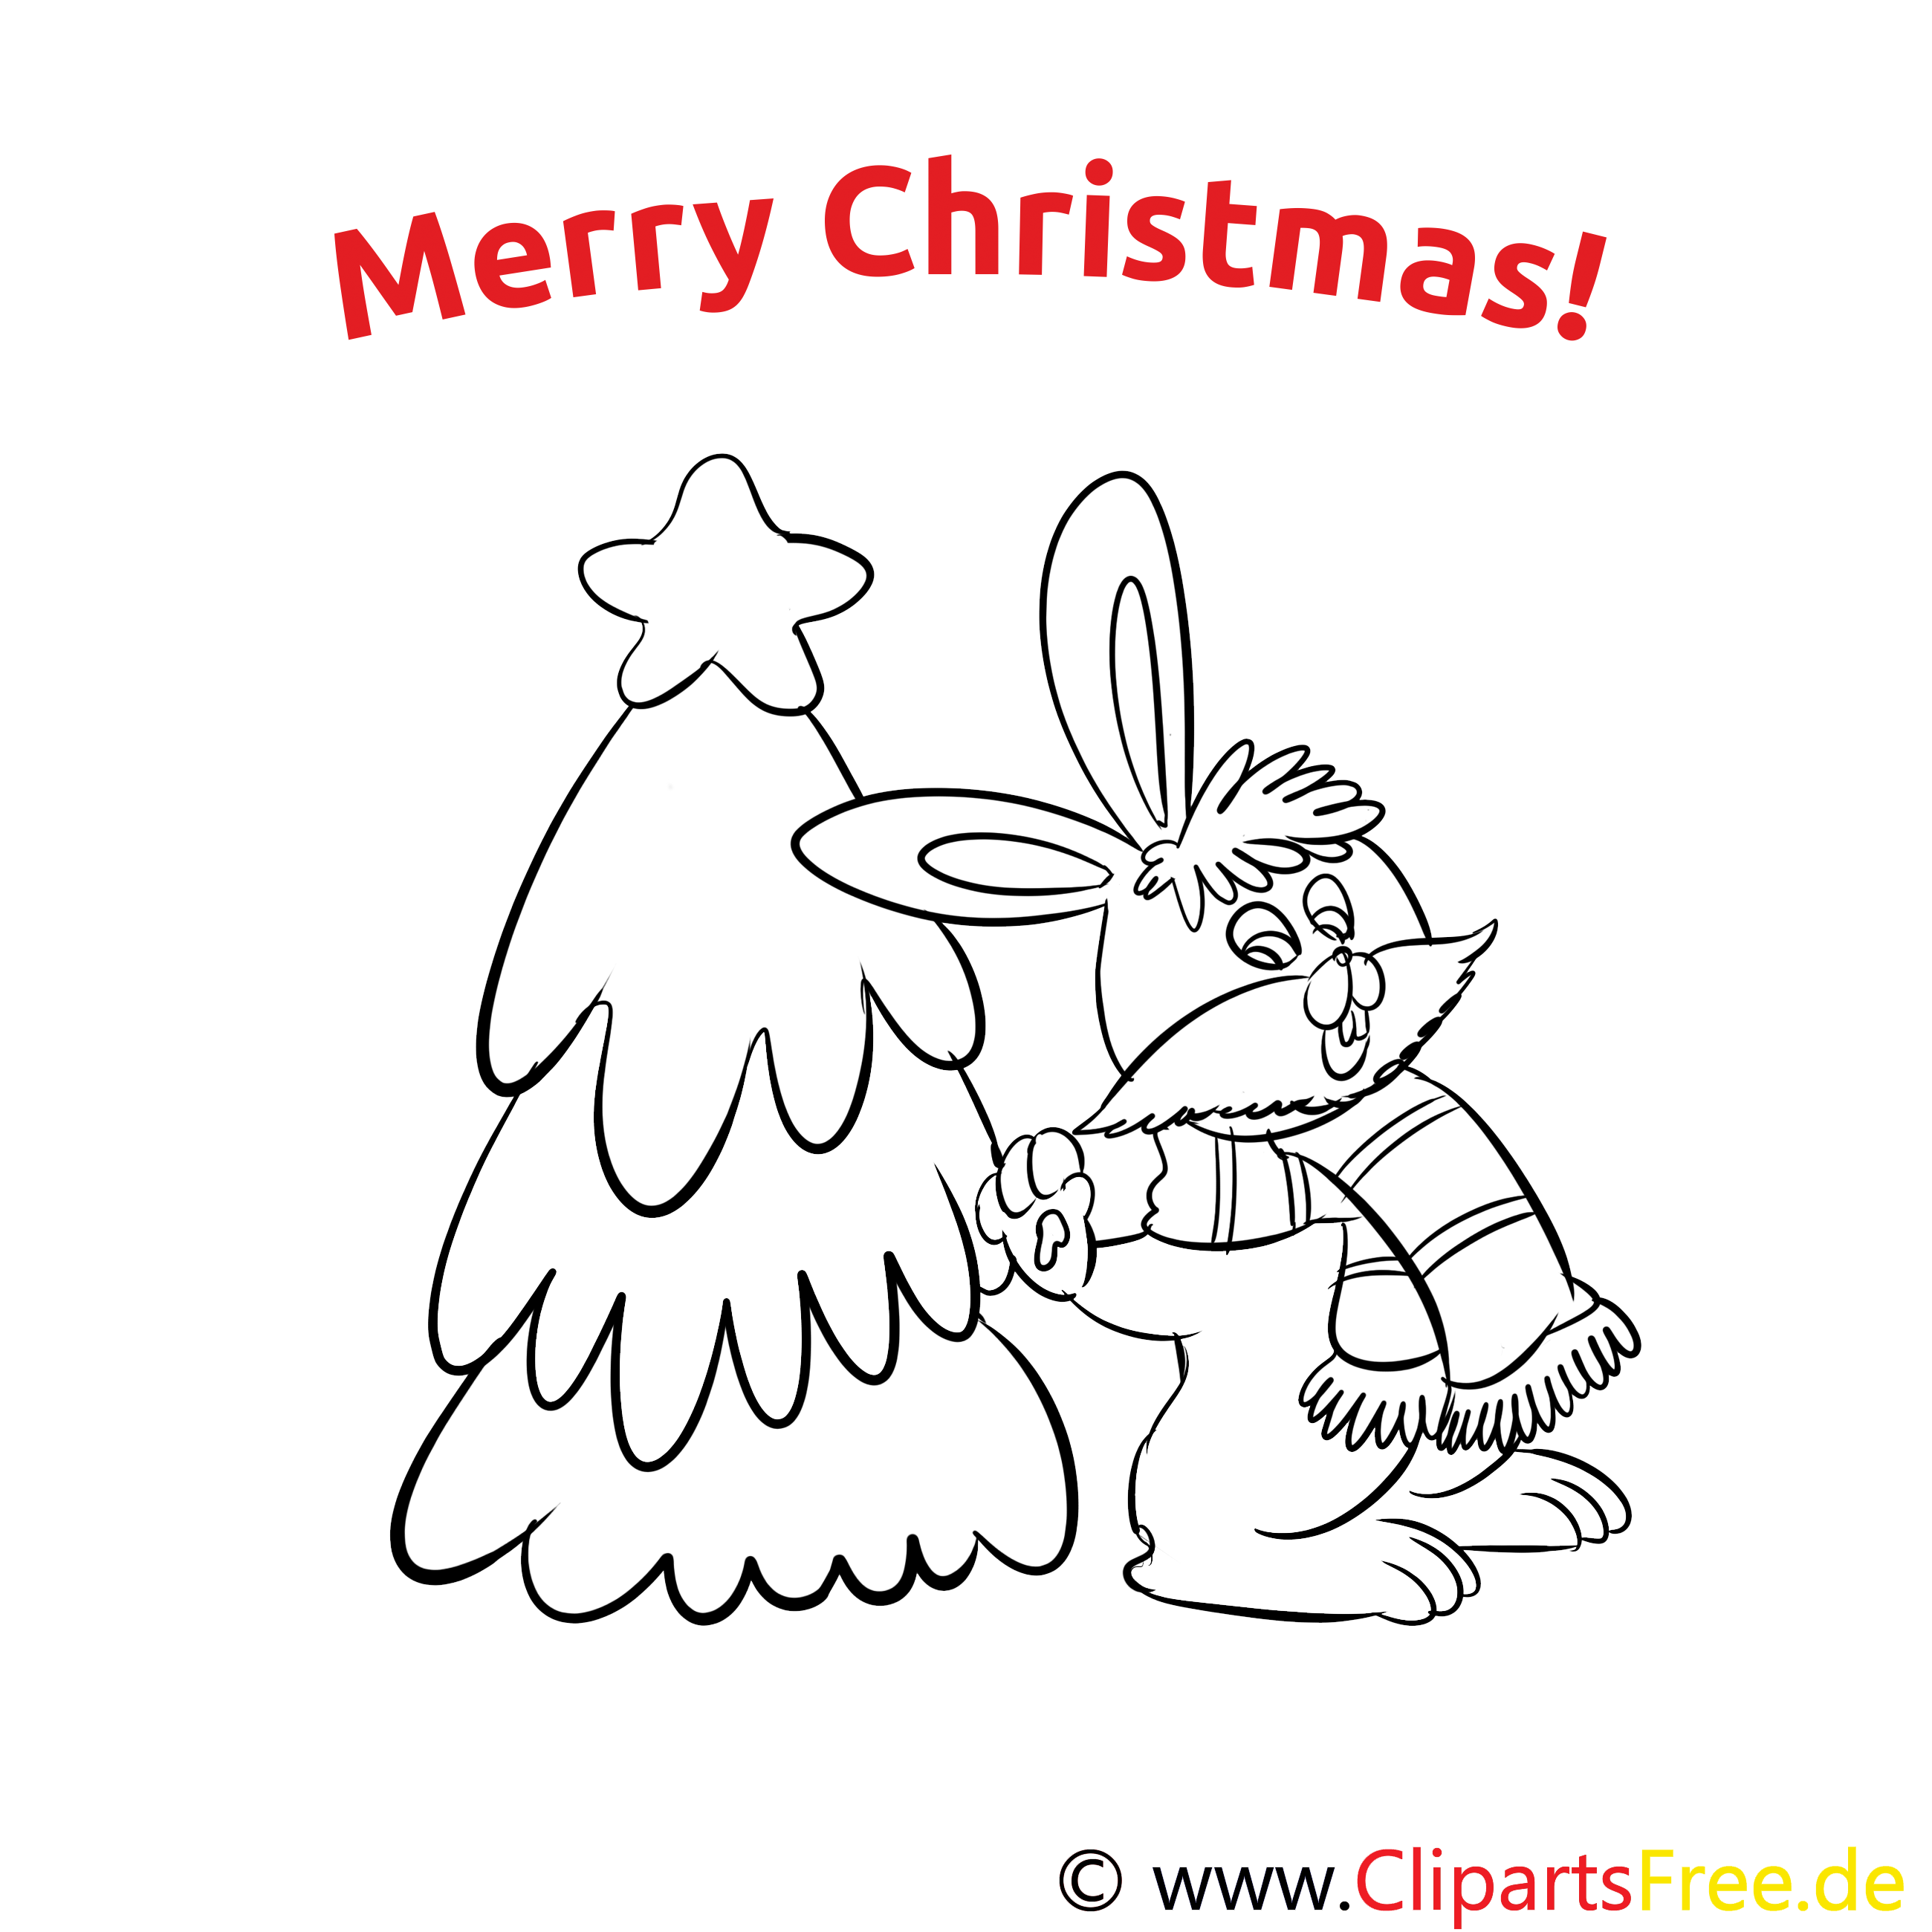 Hase Weihnachtsbaum Merry Christmas Coloring Sheets